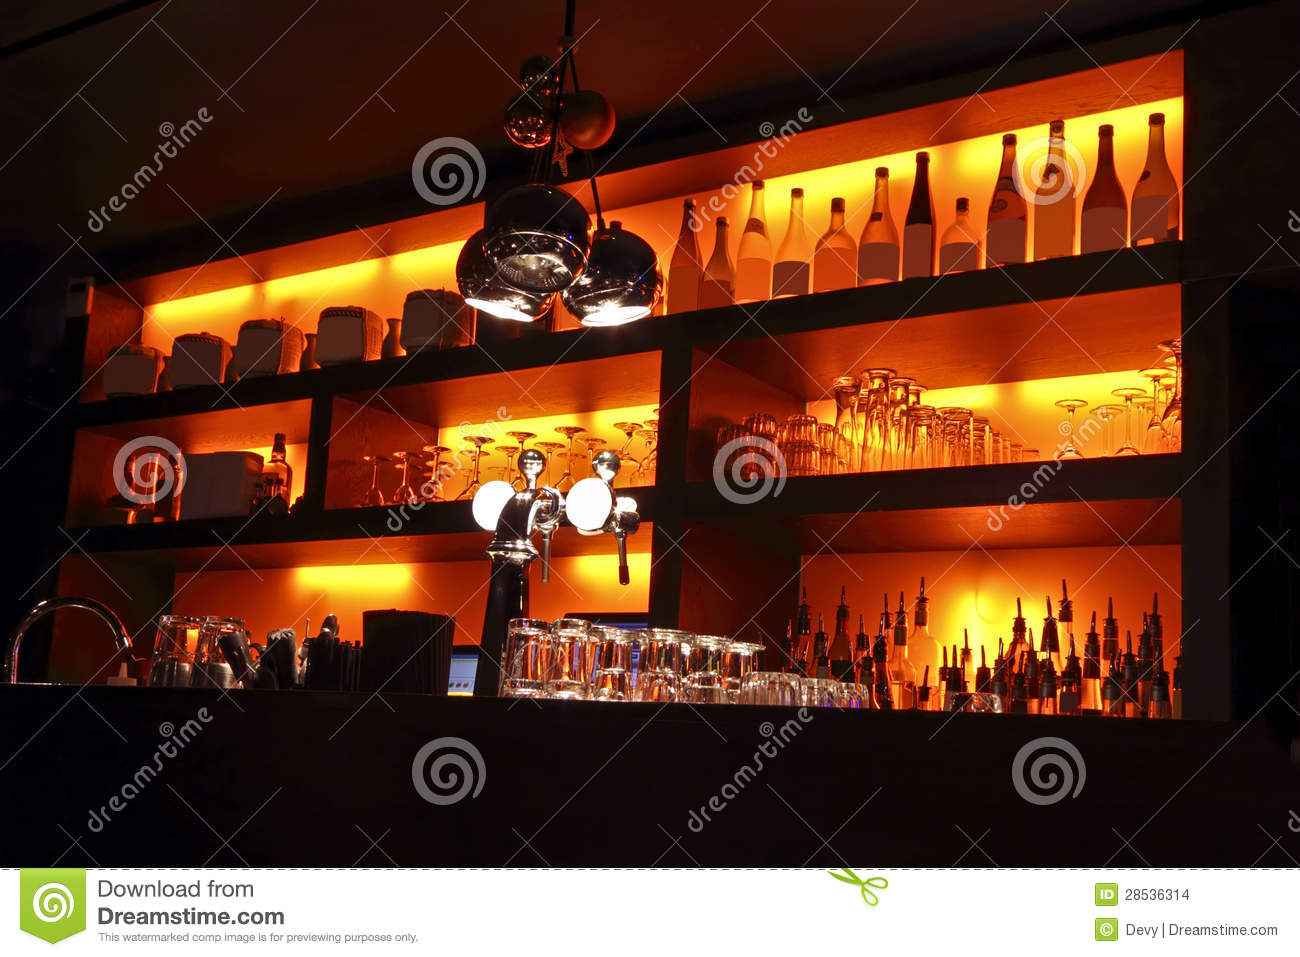 https://thumbs.dreamstime.com/z/coctail-bar-interior-28536314.jpg